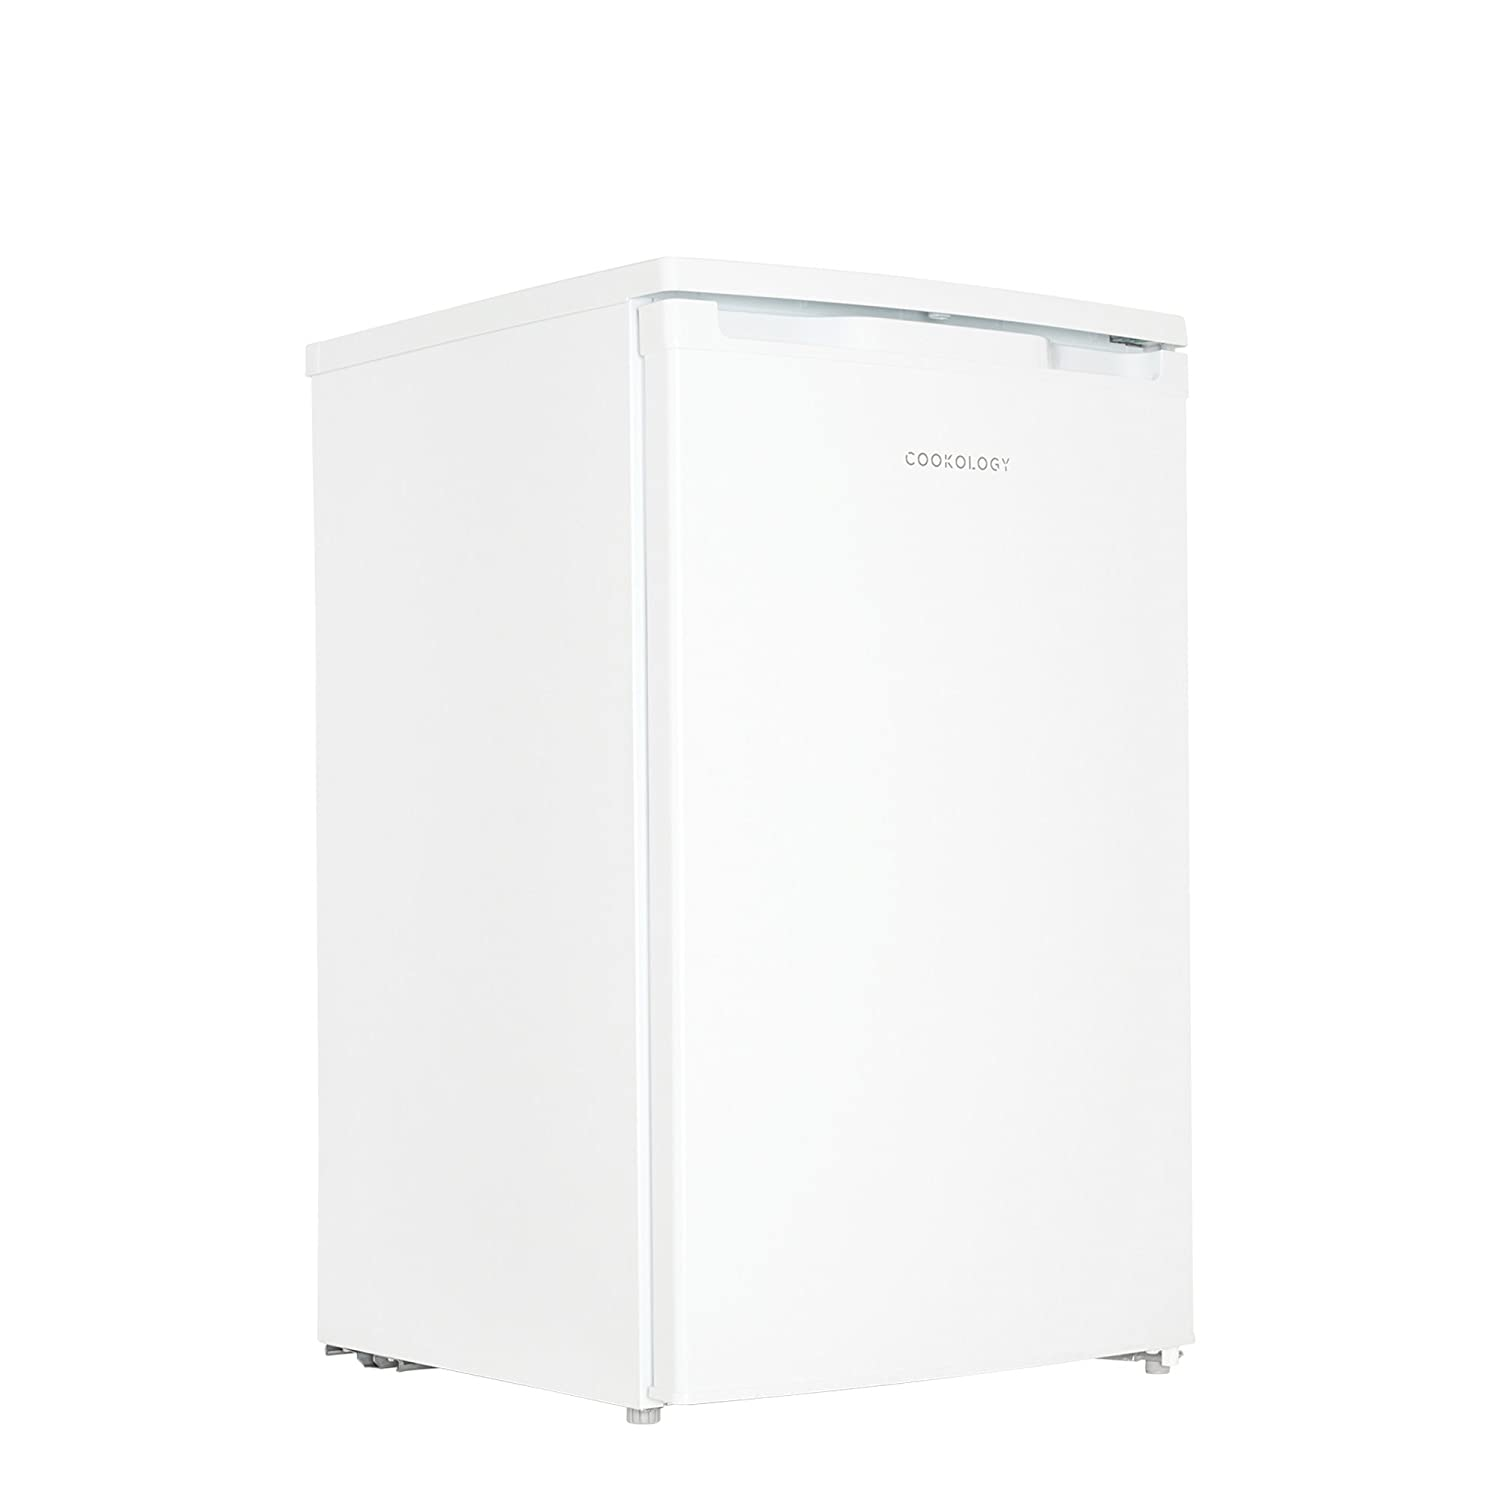 Cookology UCIB98WH 50cm Freestanding Undercounter Fridge & Ice Box in White [Energy Class A+]